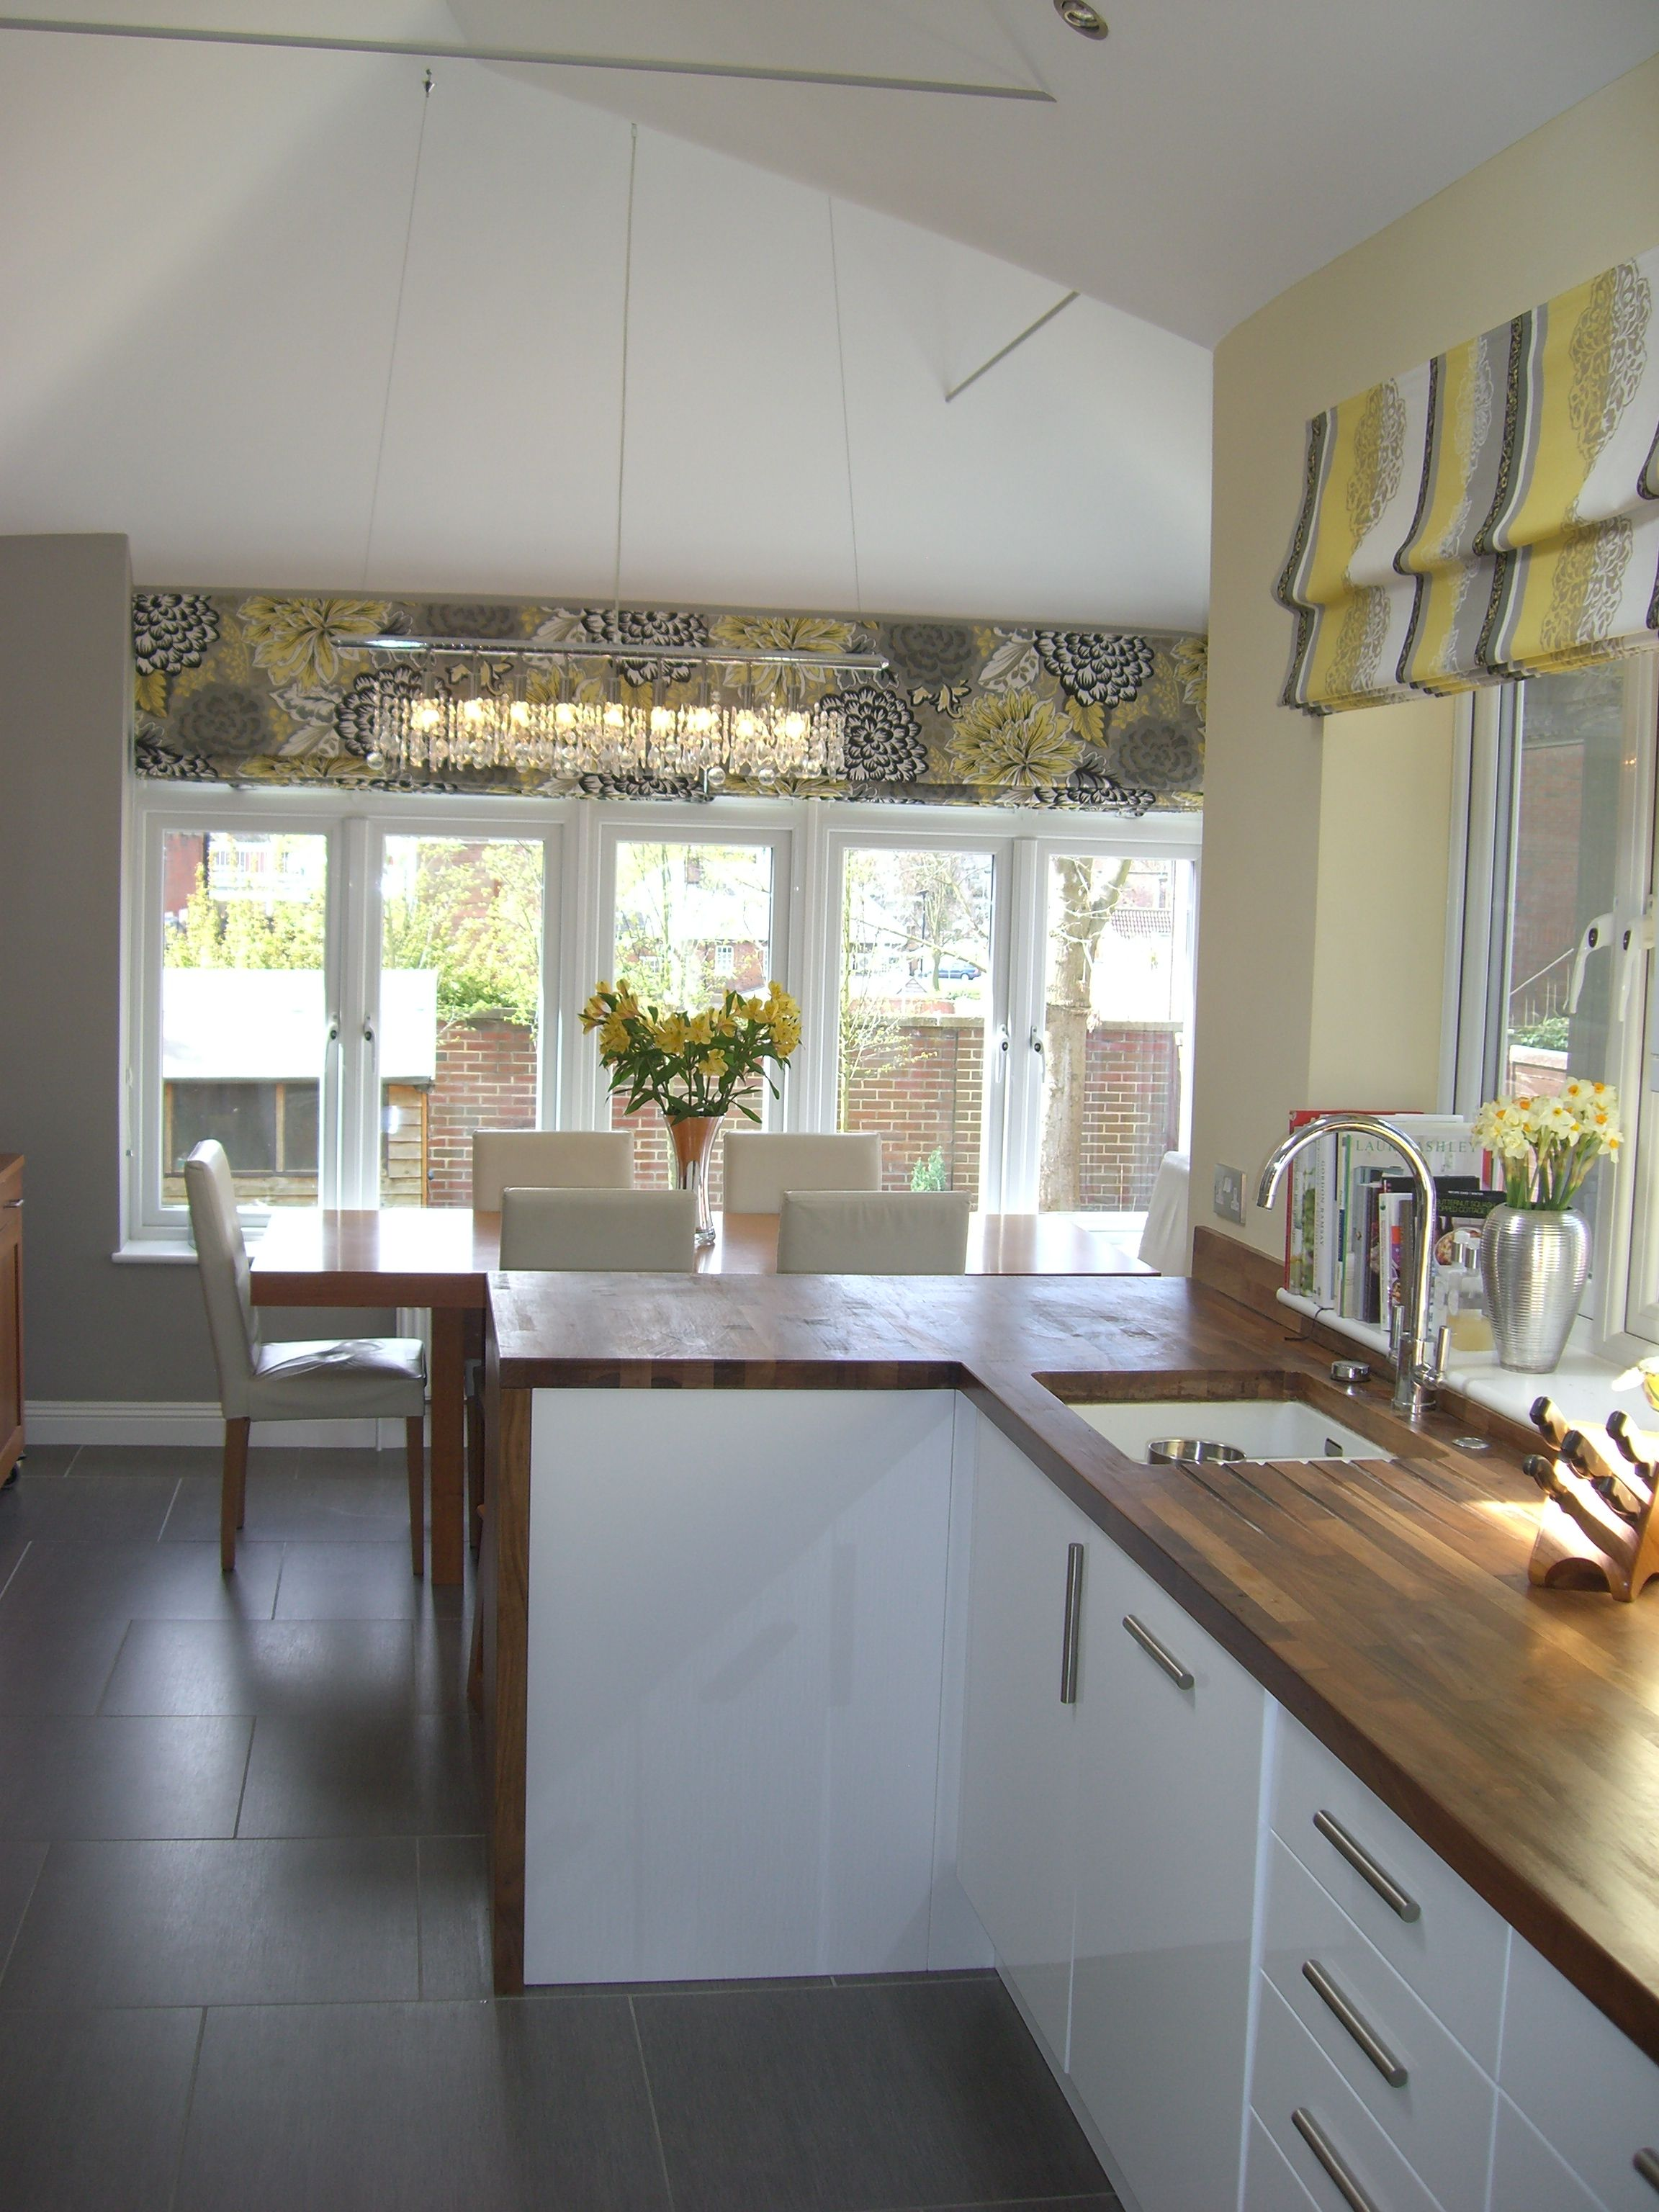 Kitchen Curtains For Yellow Walls Love The Blinds And Warm Modern Grey Yellow Scheme Floor